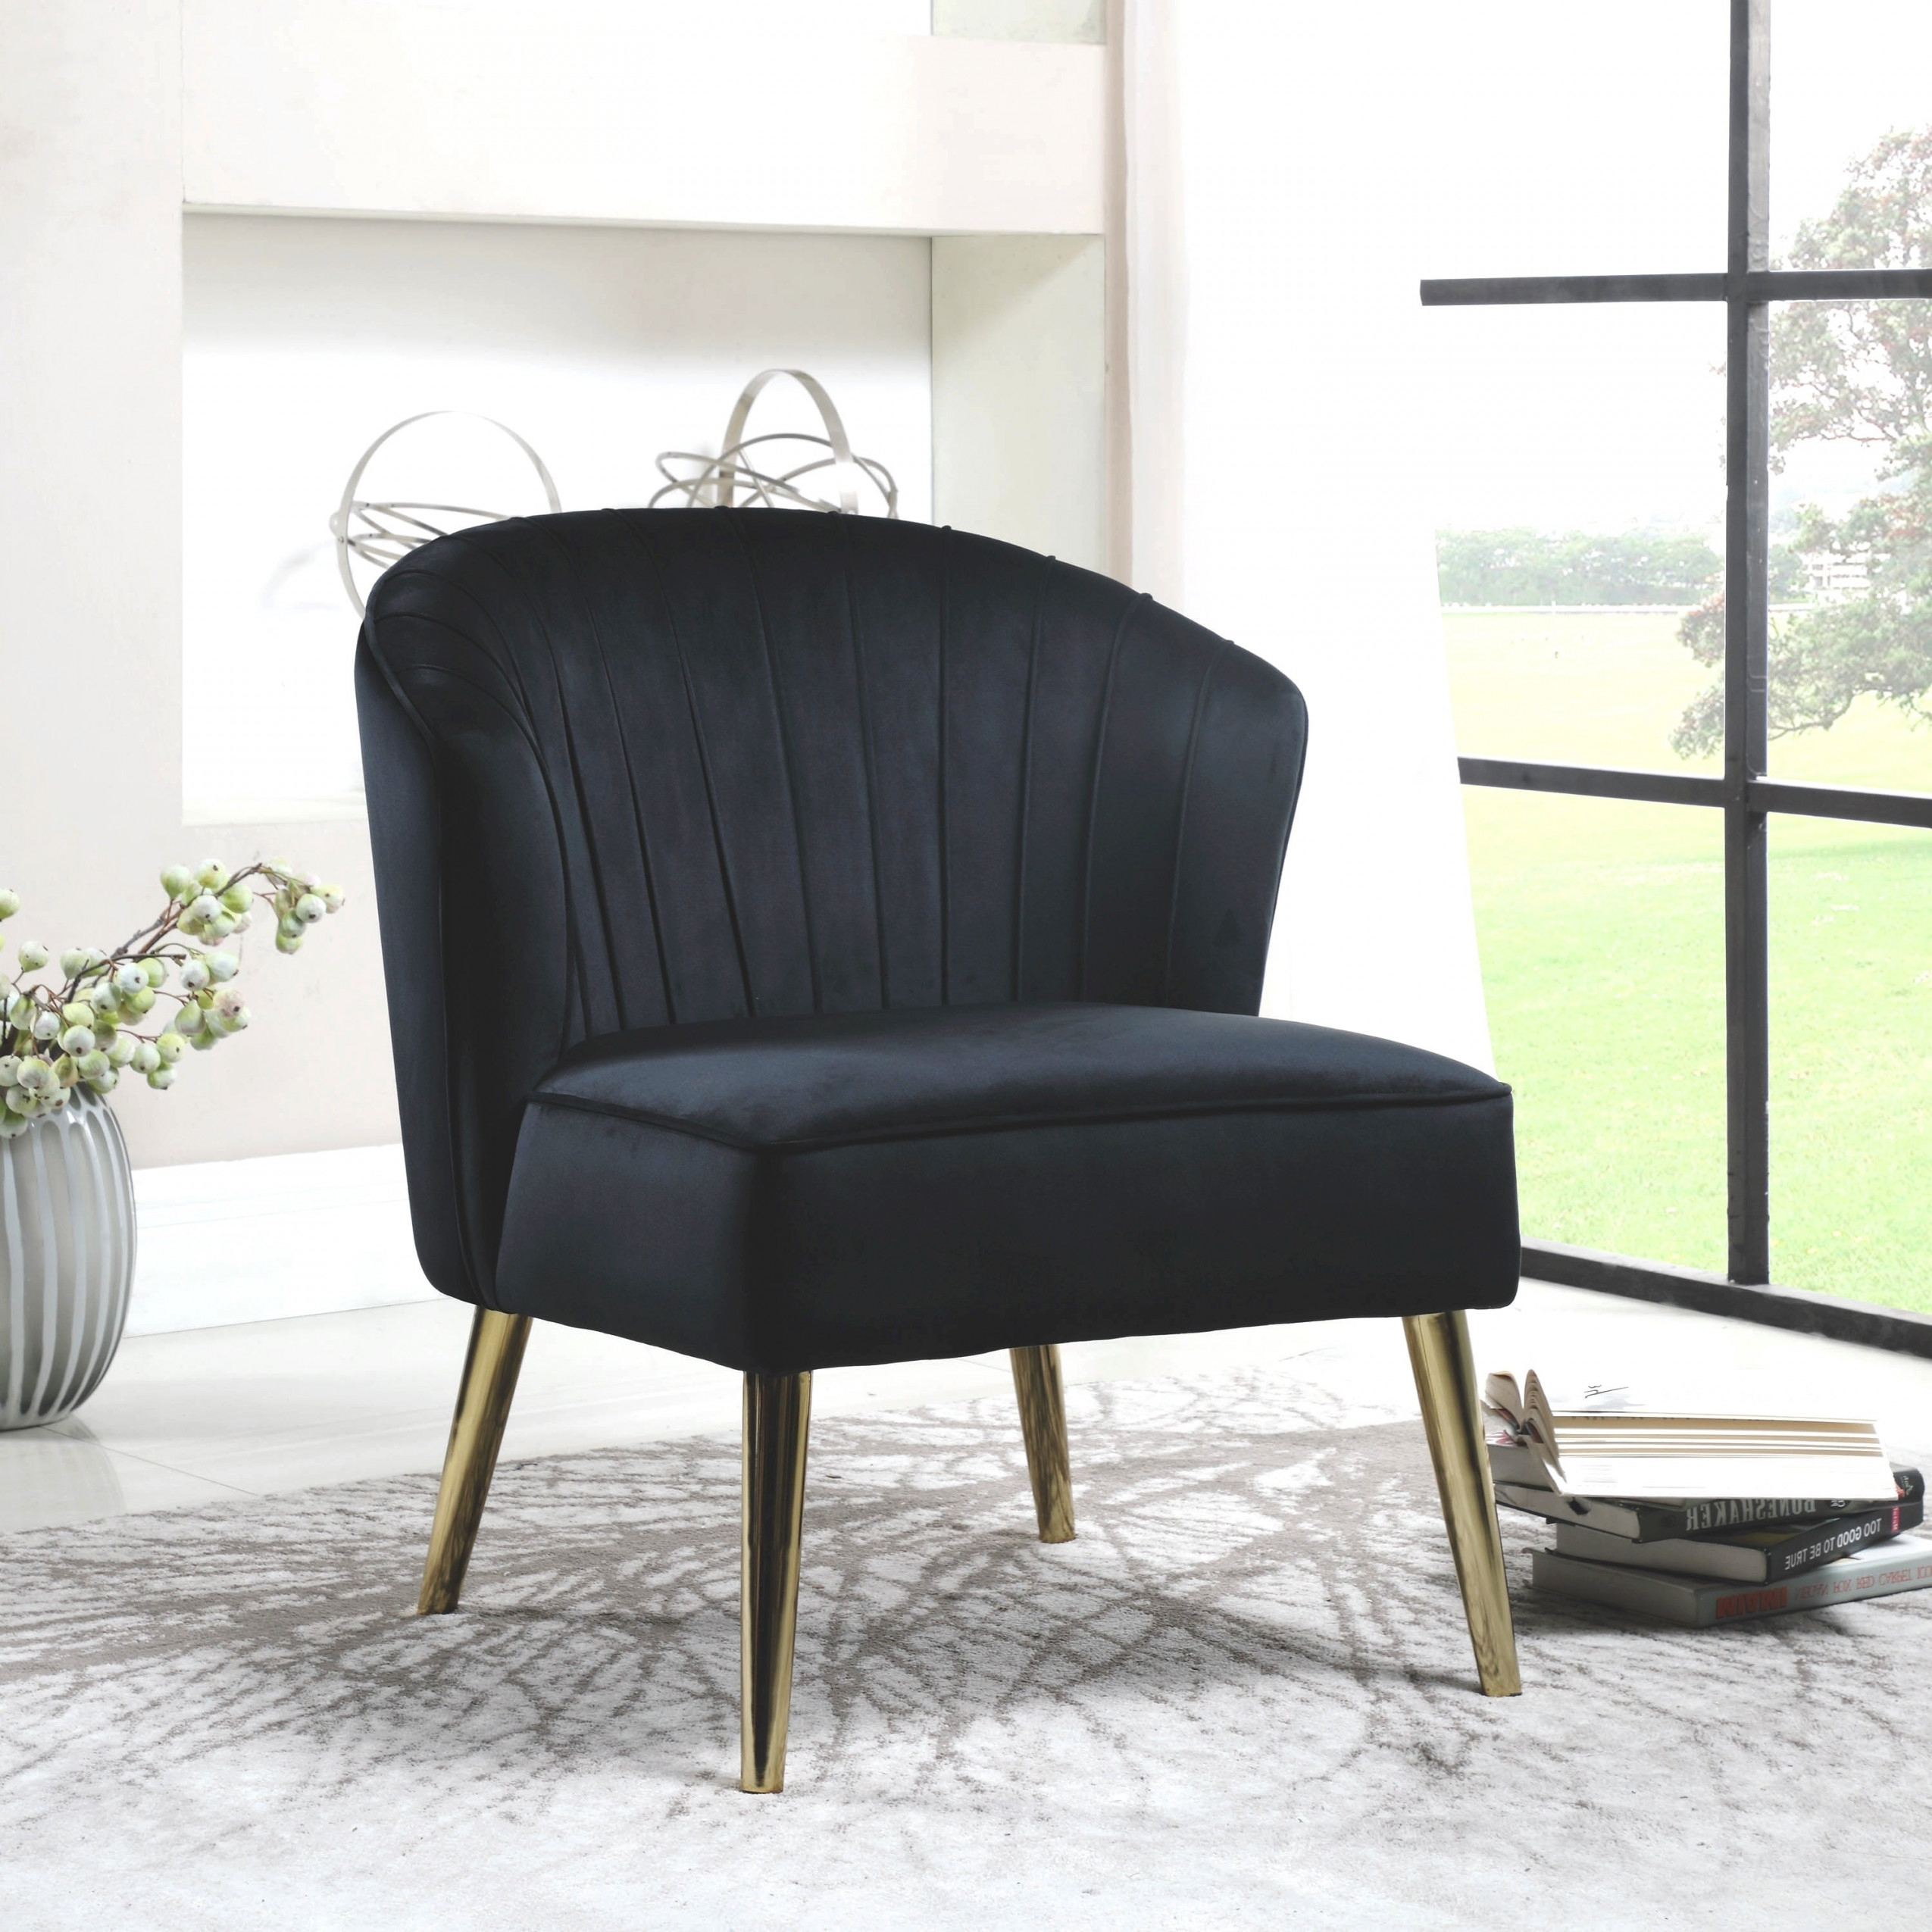 Black Velvet/Brass Mid-Century Modern Living Room Accent Chair with Modern Chairs For Living Room